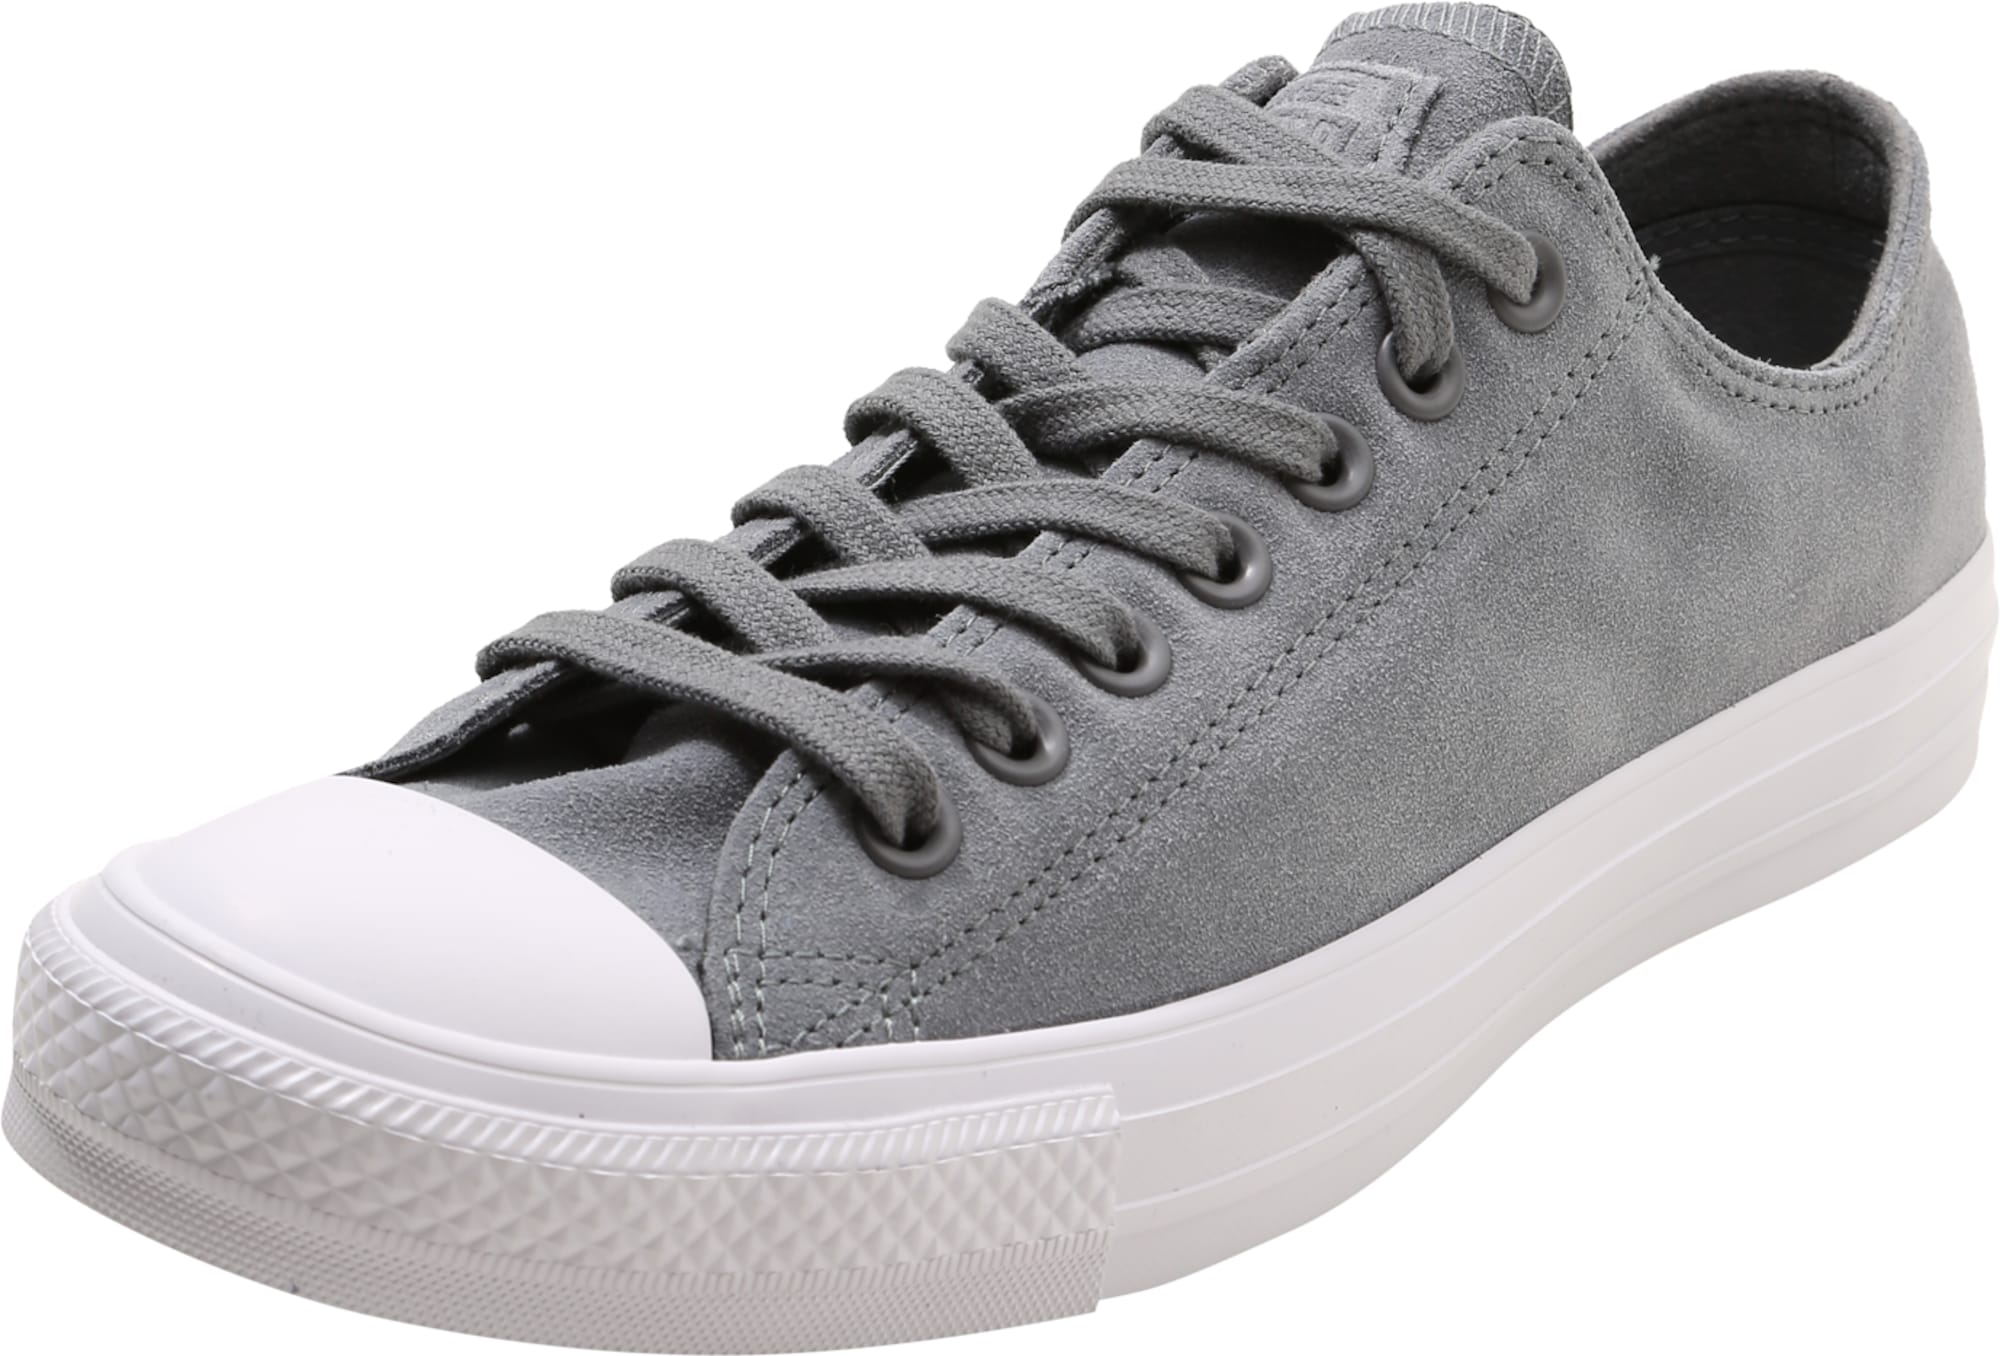 converse sneaker 39 chuck taylor all star ox 39 in grau. Black Bedroom Furniture Sets. Home Design Ideas